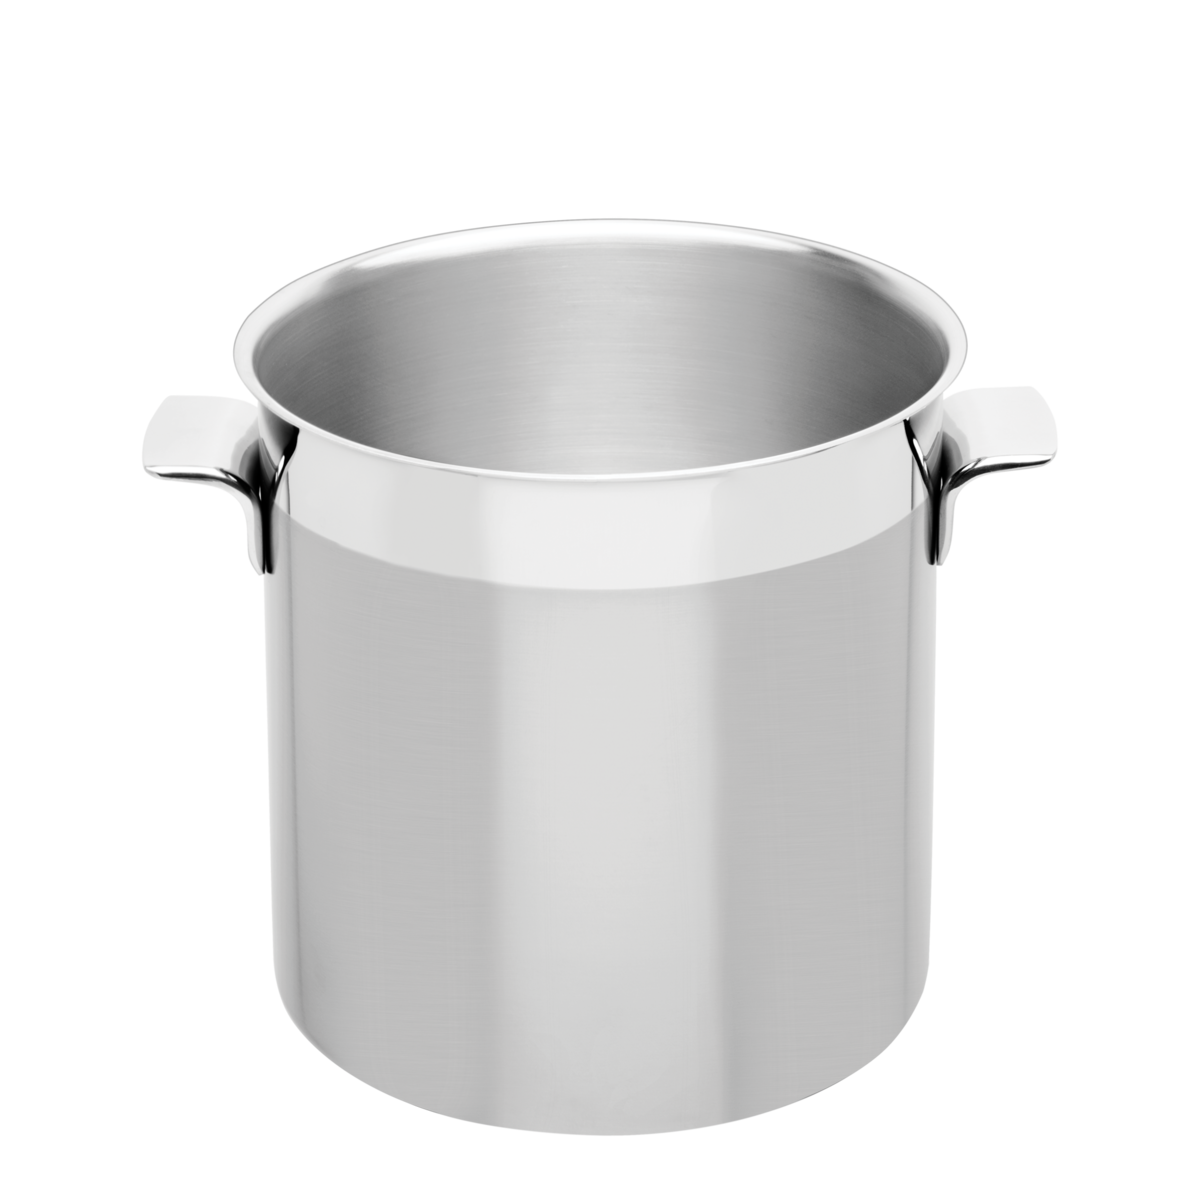 Tramontina Cosmos Stainless Steel Ice Bucket With Matte Finish And Without Lid 12 Cm And 1 5 L Tramontina